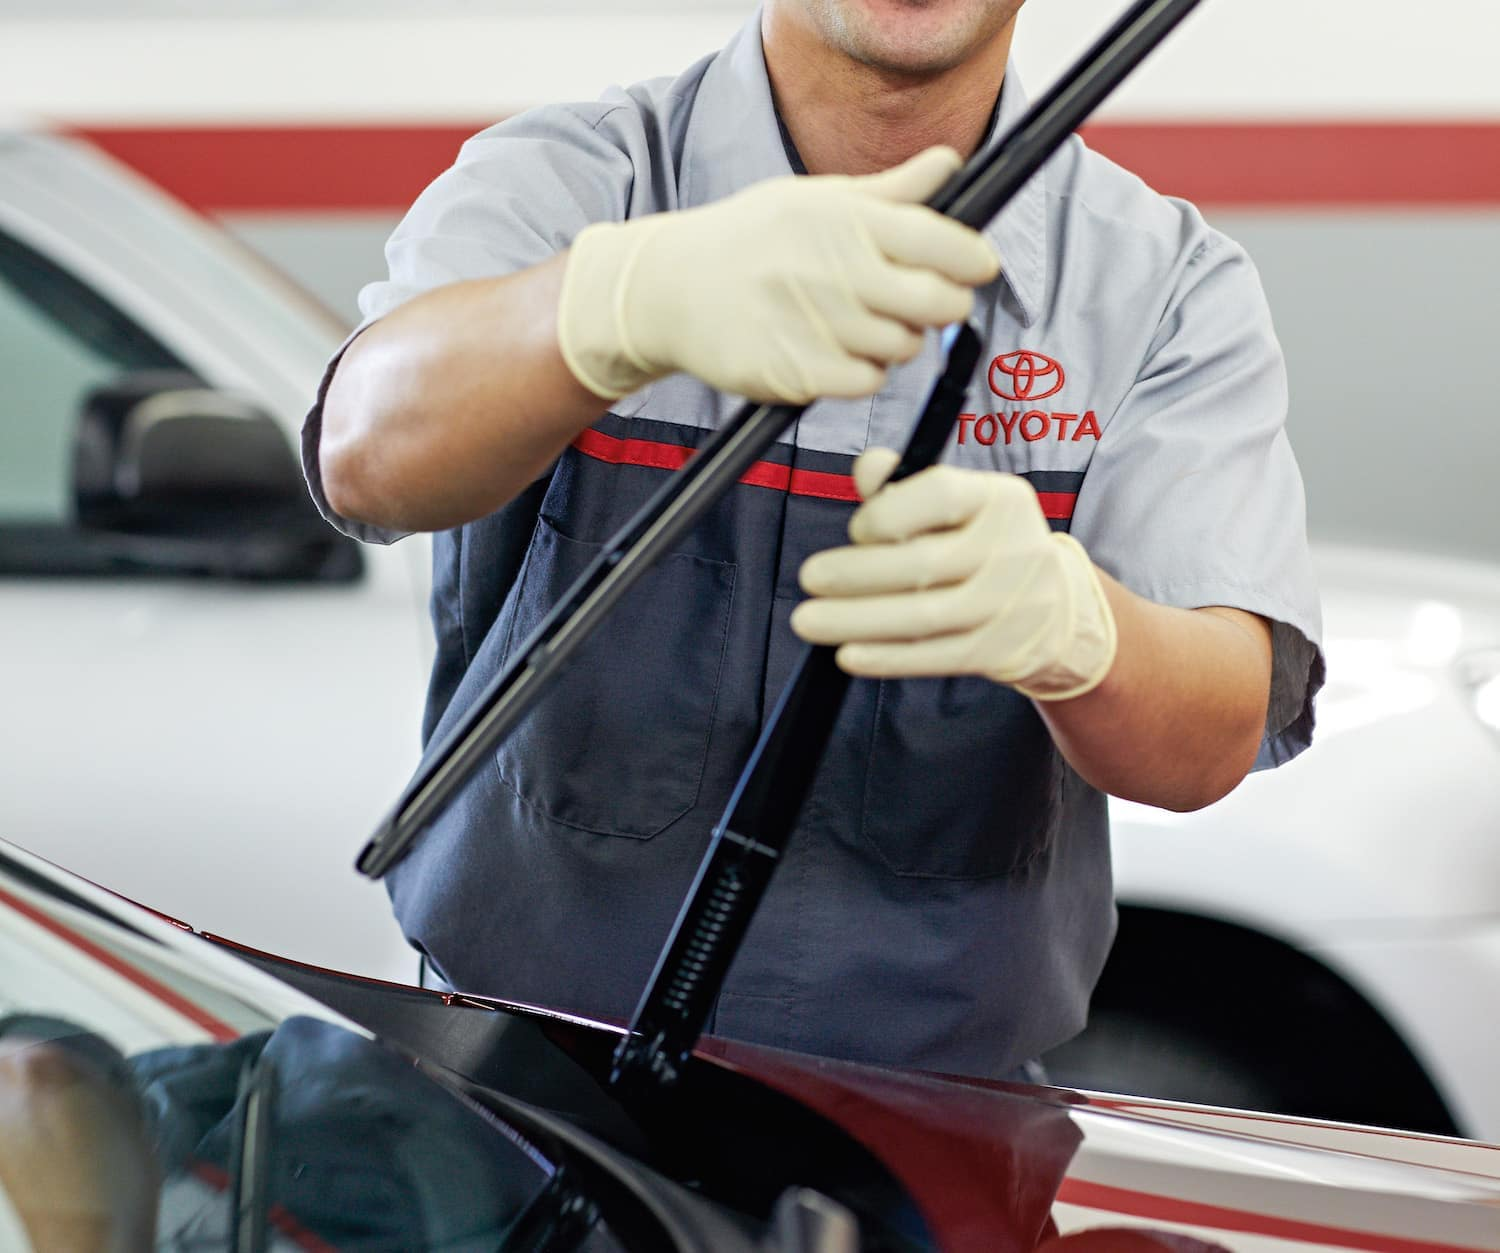 Lancaster Toyota is a Toyota Dealer Near Lancaster PA | Toyota Service Advisor Replacing Windshield Wiper On Red Toyota Vehicle